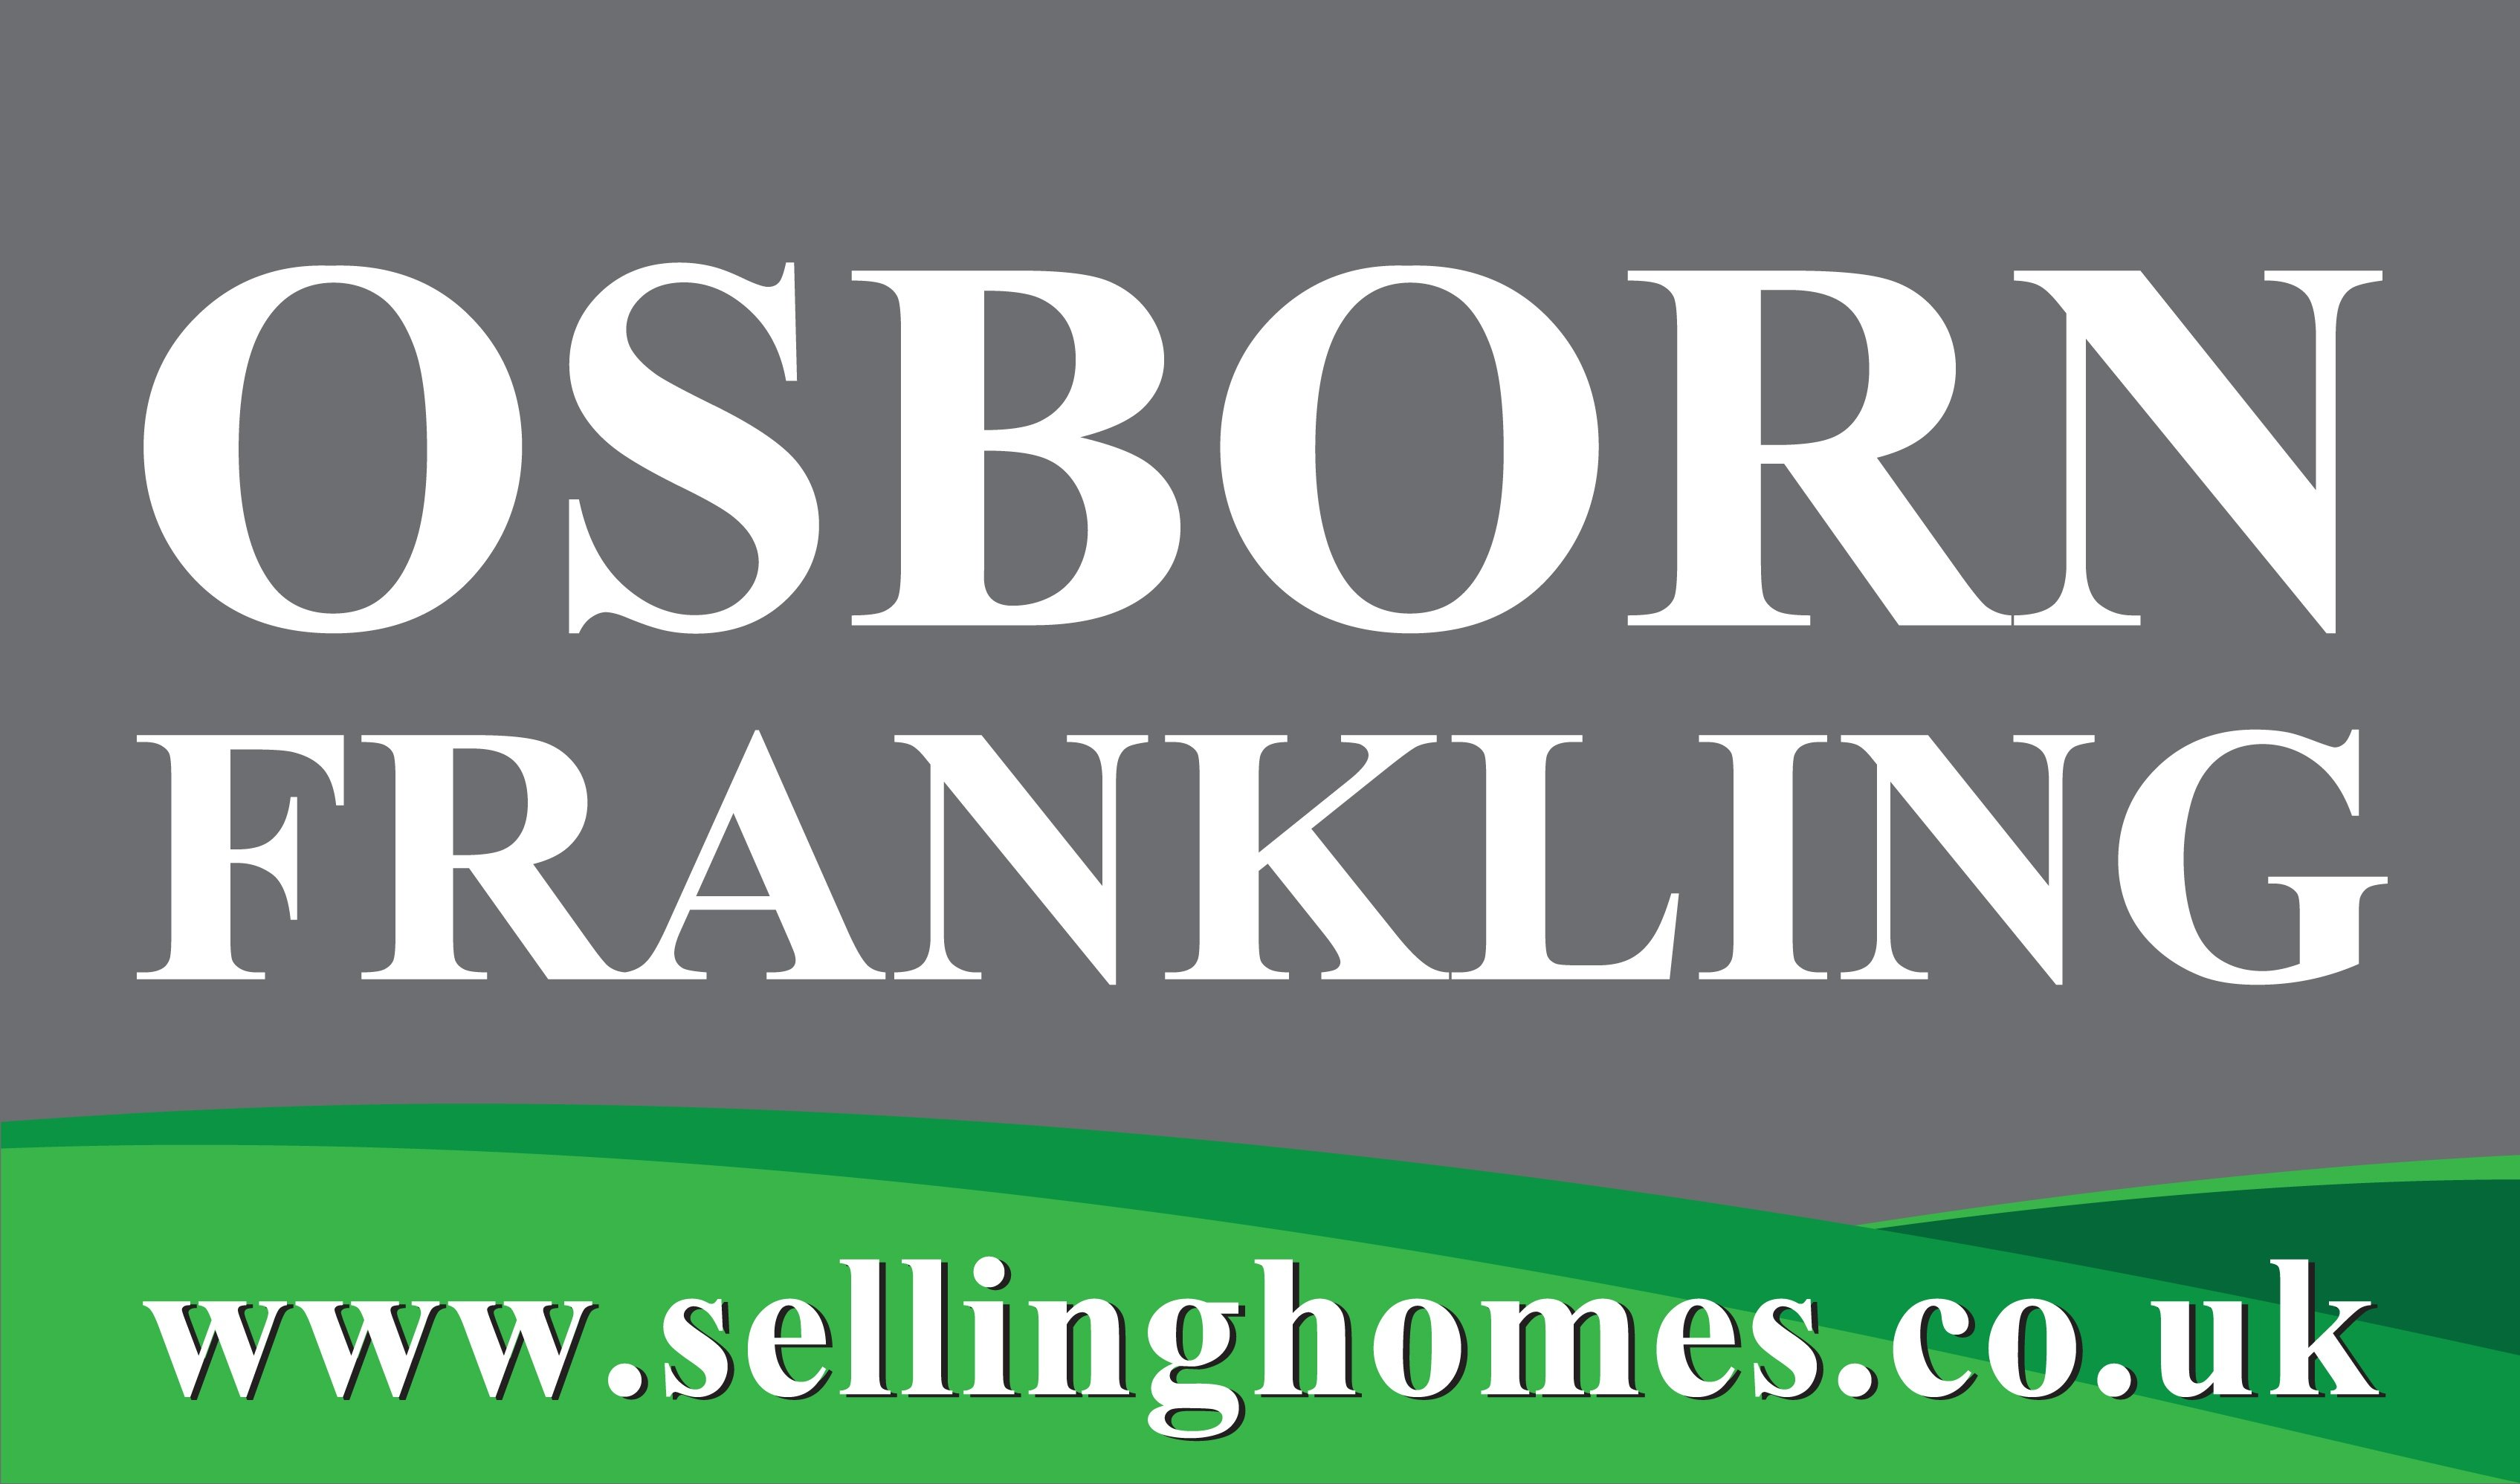 Osborn Frankling Estate Agents in Steyning logo